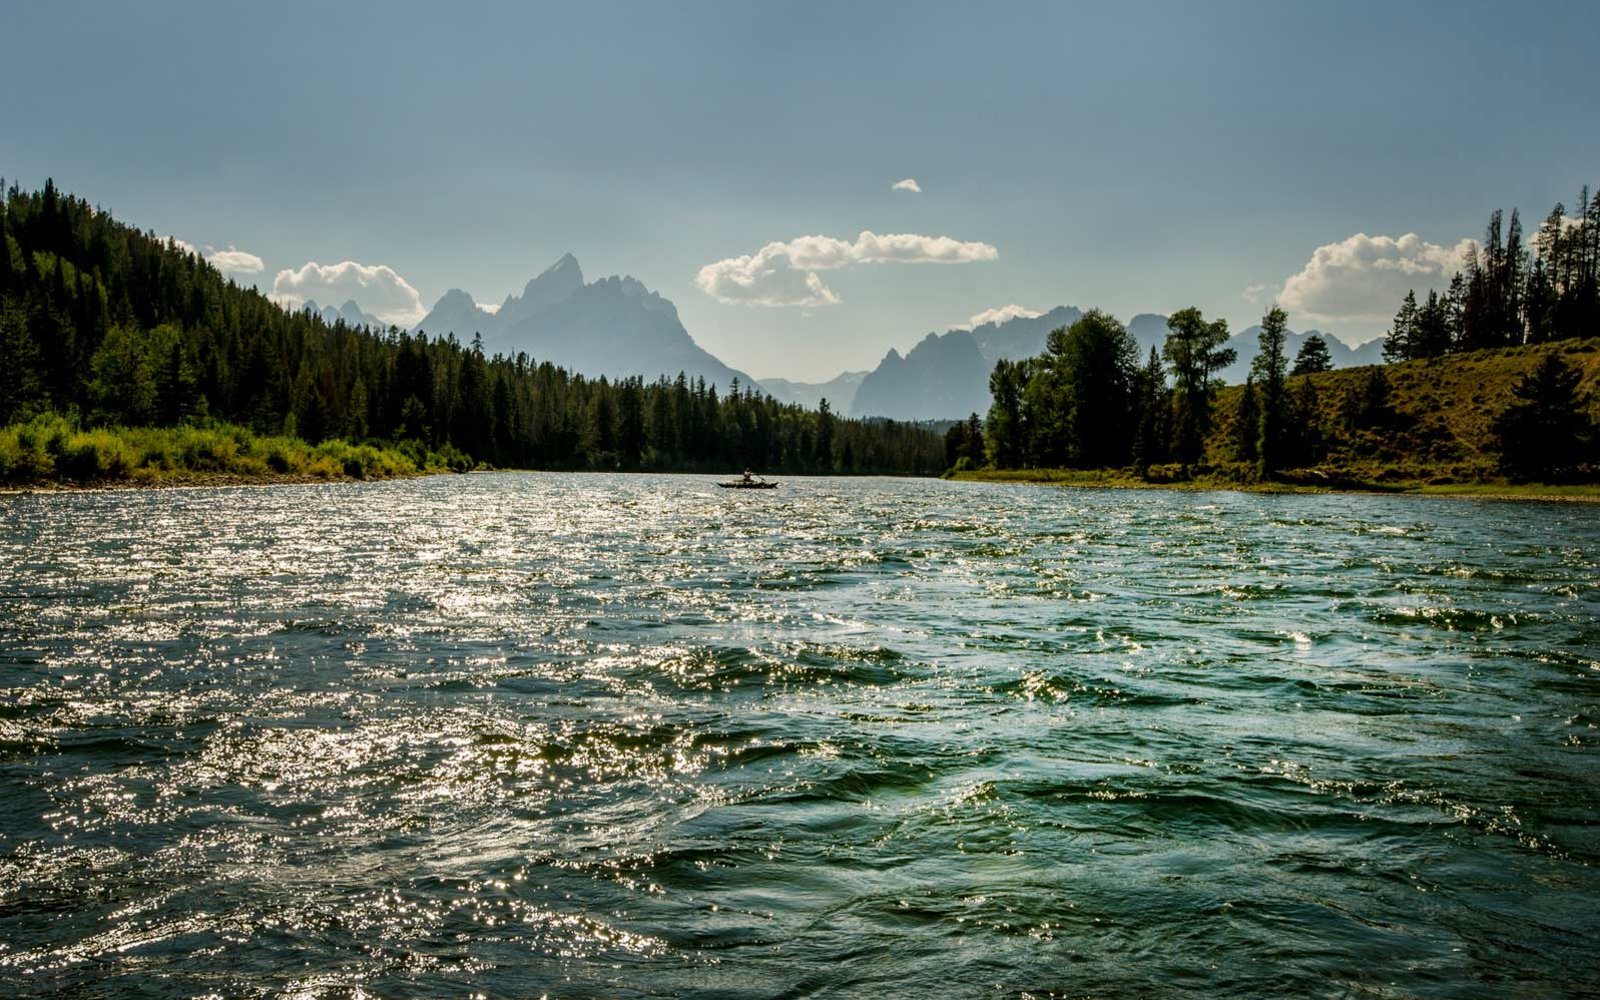 Yellowstone River, Teton Range, and Raft, Montana